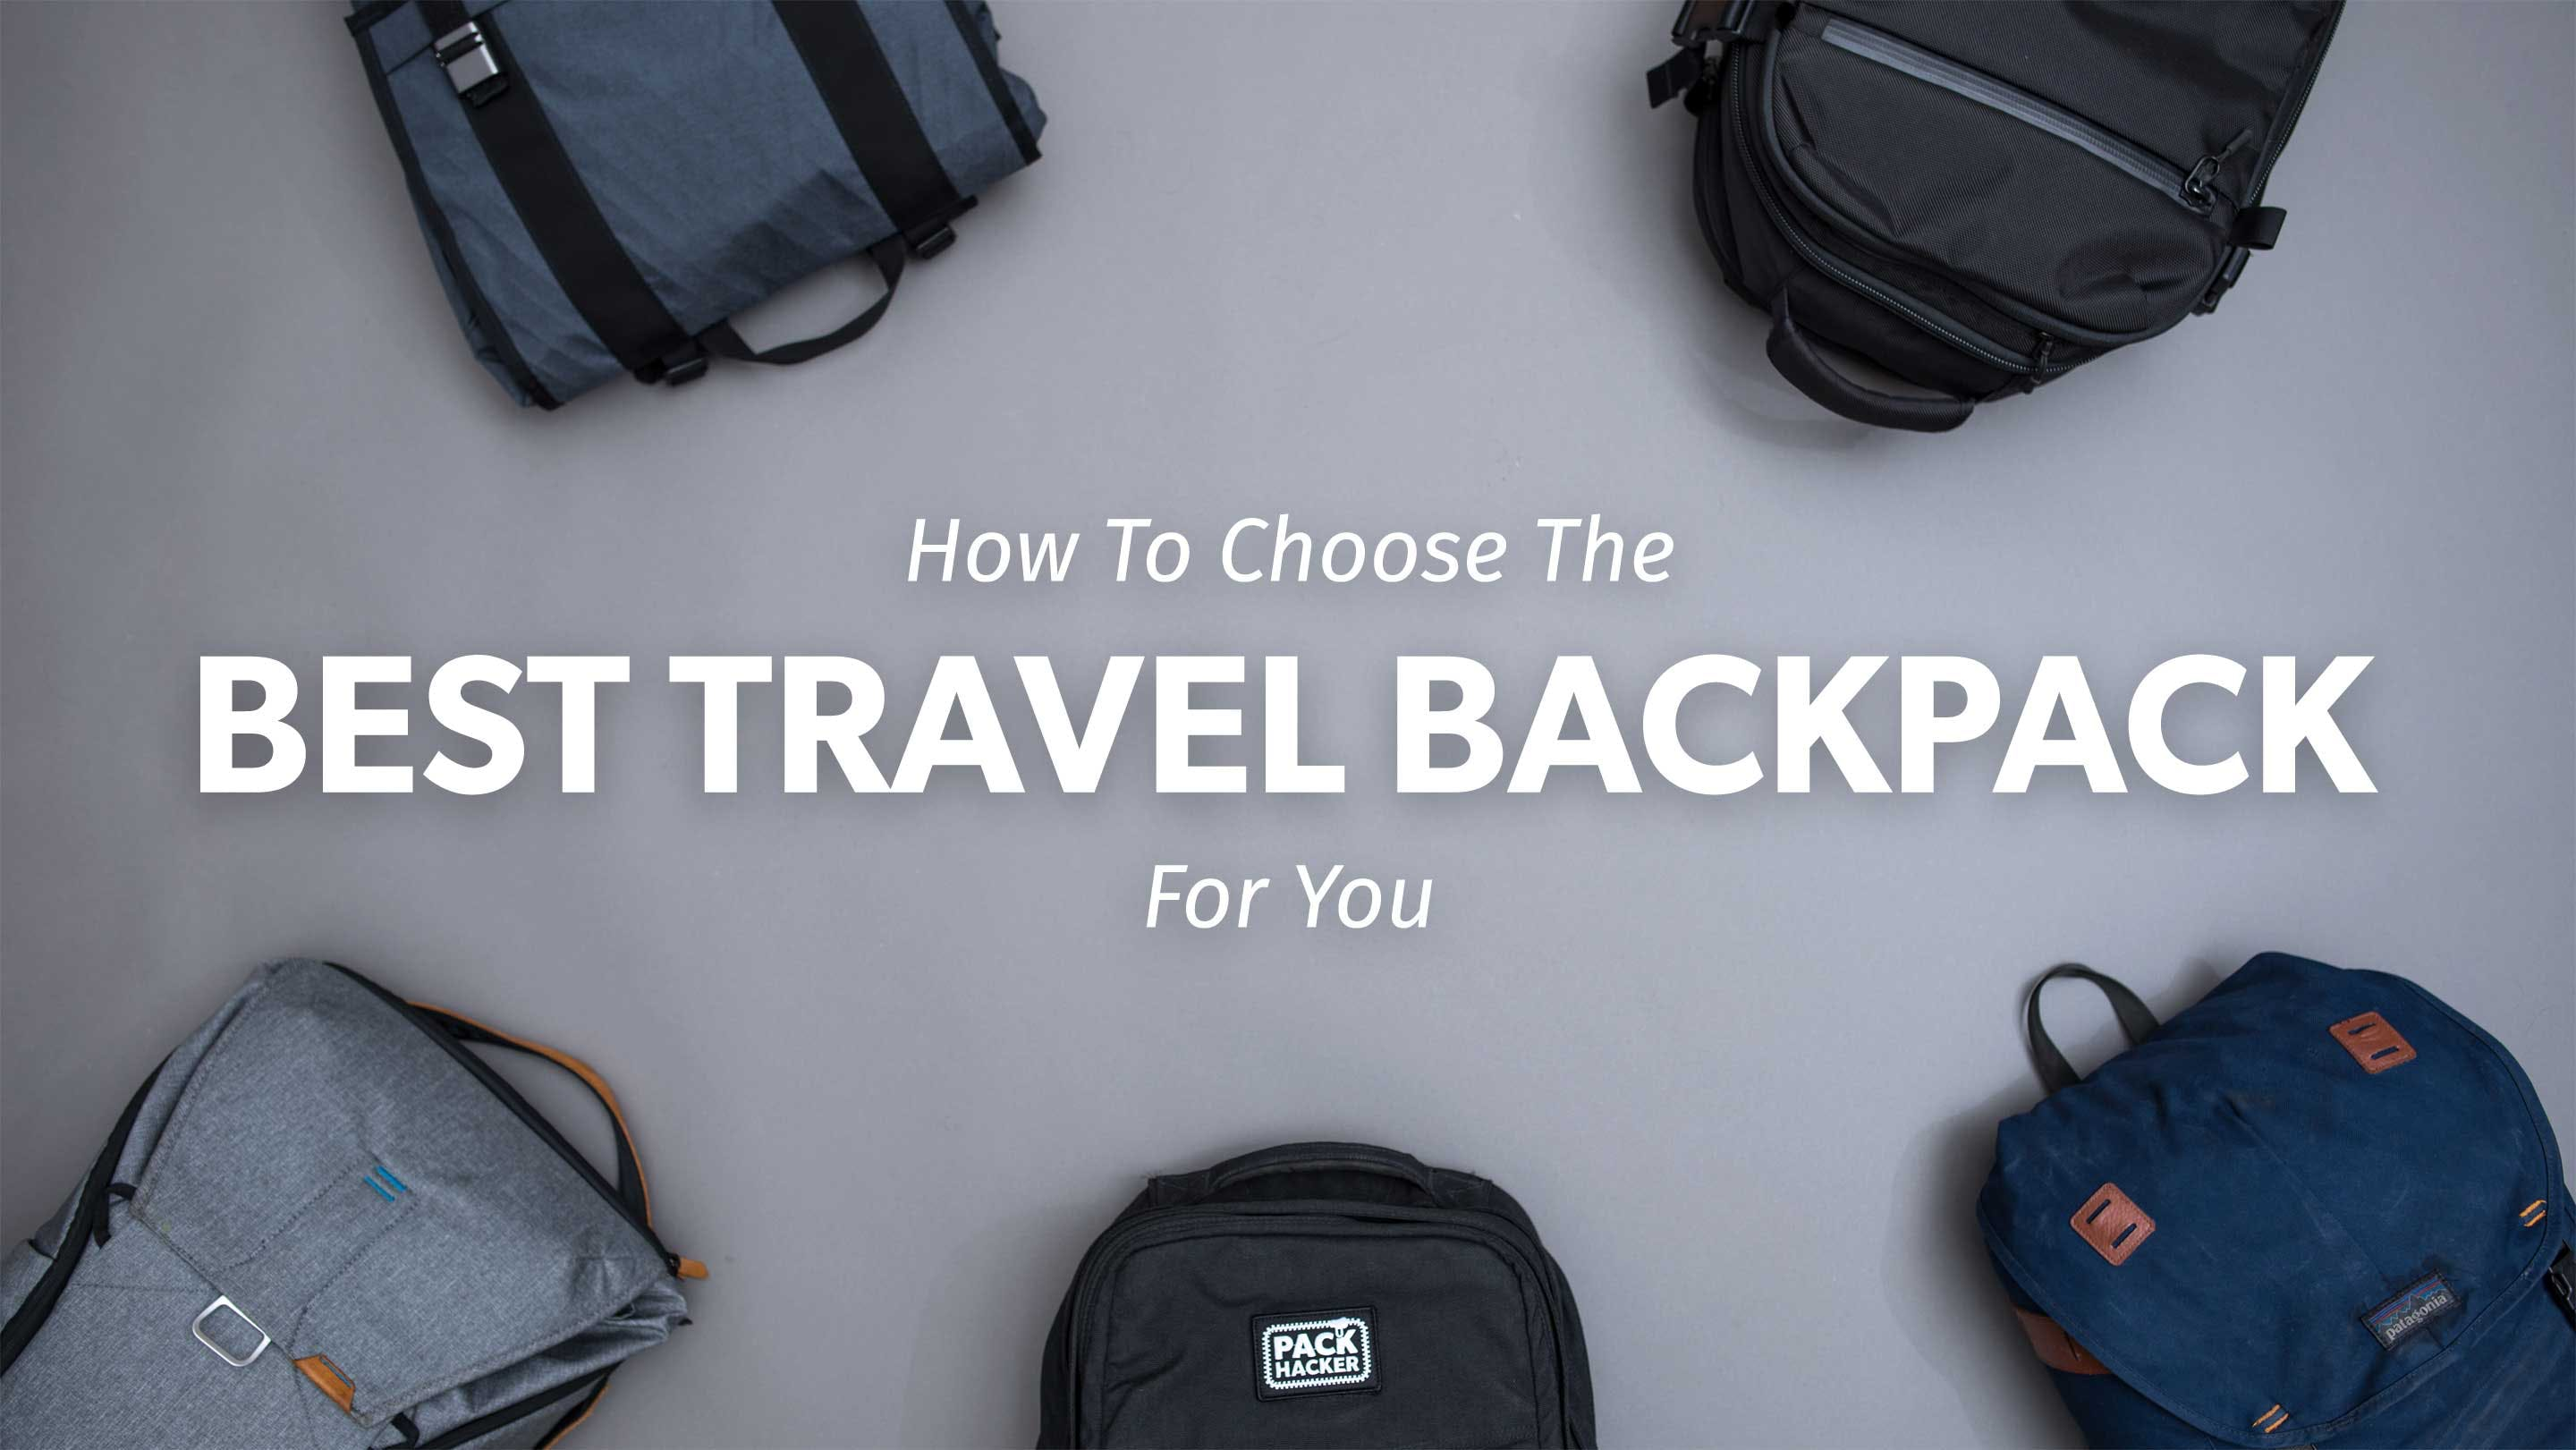 Best Travel Backpack  How To Pick In 2019  0b7d301220c5d